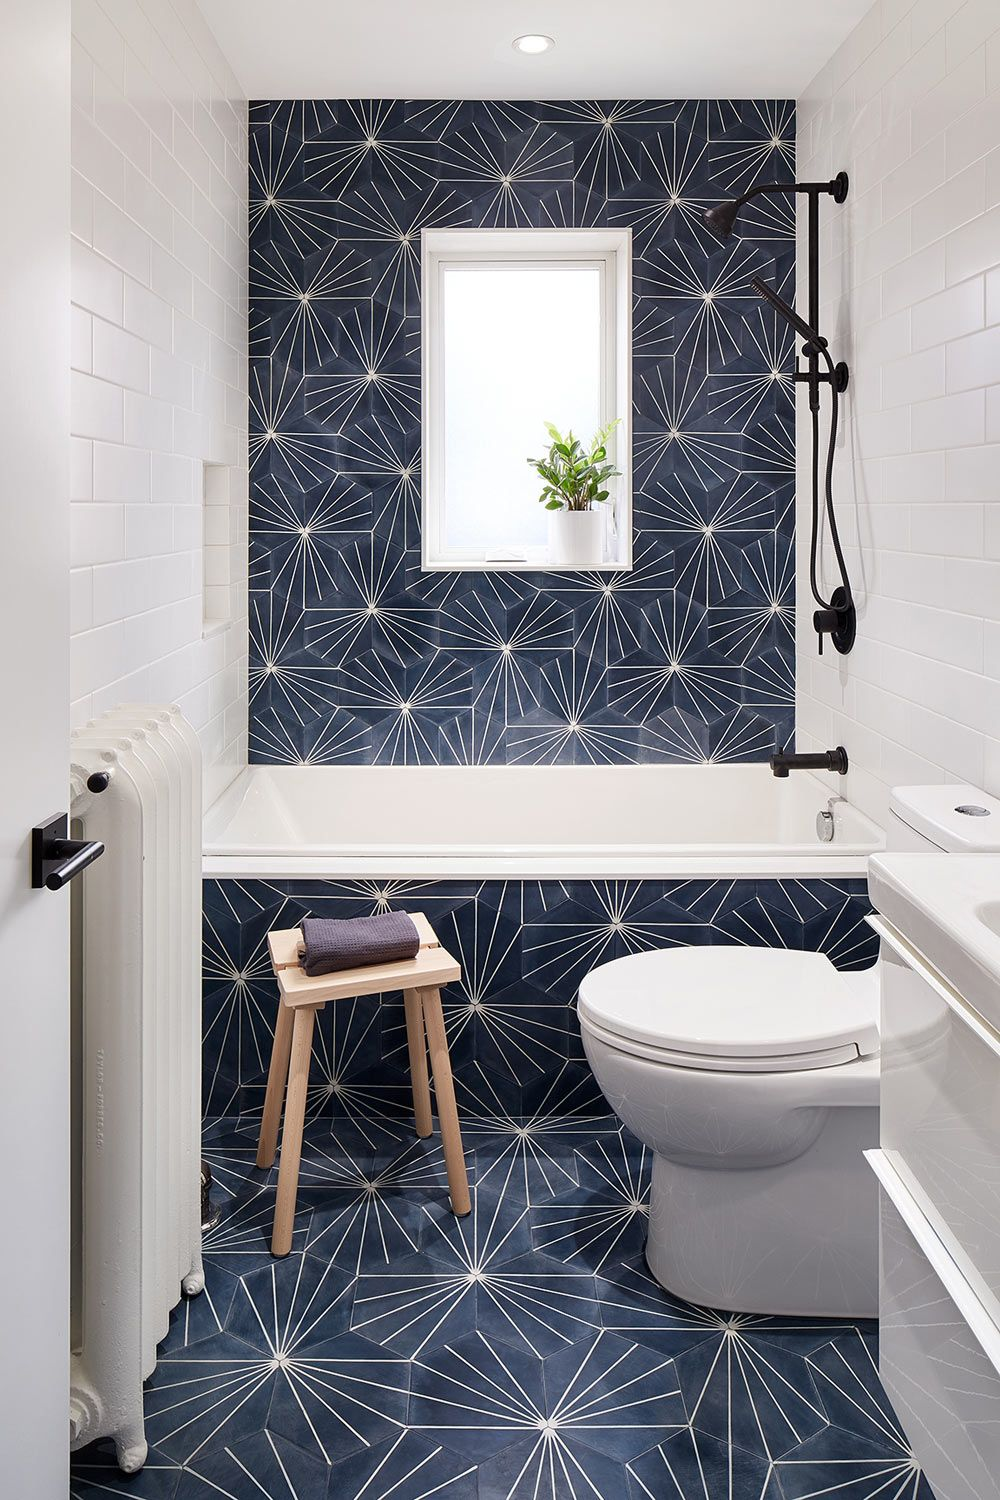 Aamp Studio Renovates And Adds Onto A 100 Year Old Townhouse In Toronto Bathroom Interior Bathroom Interior Design Modern Bathroom Design